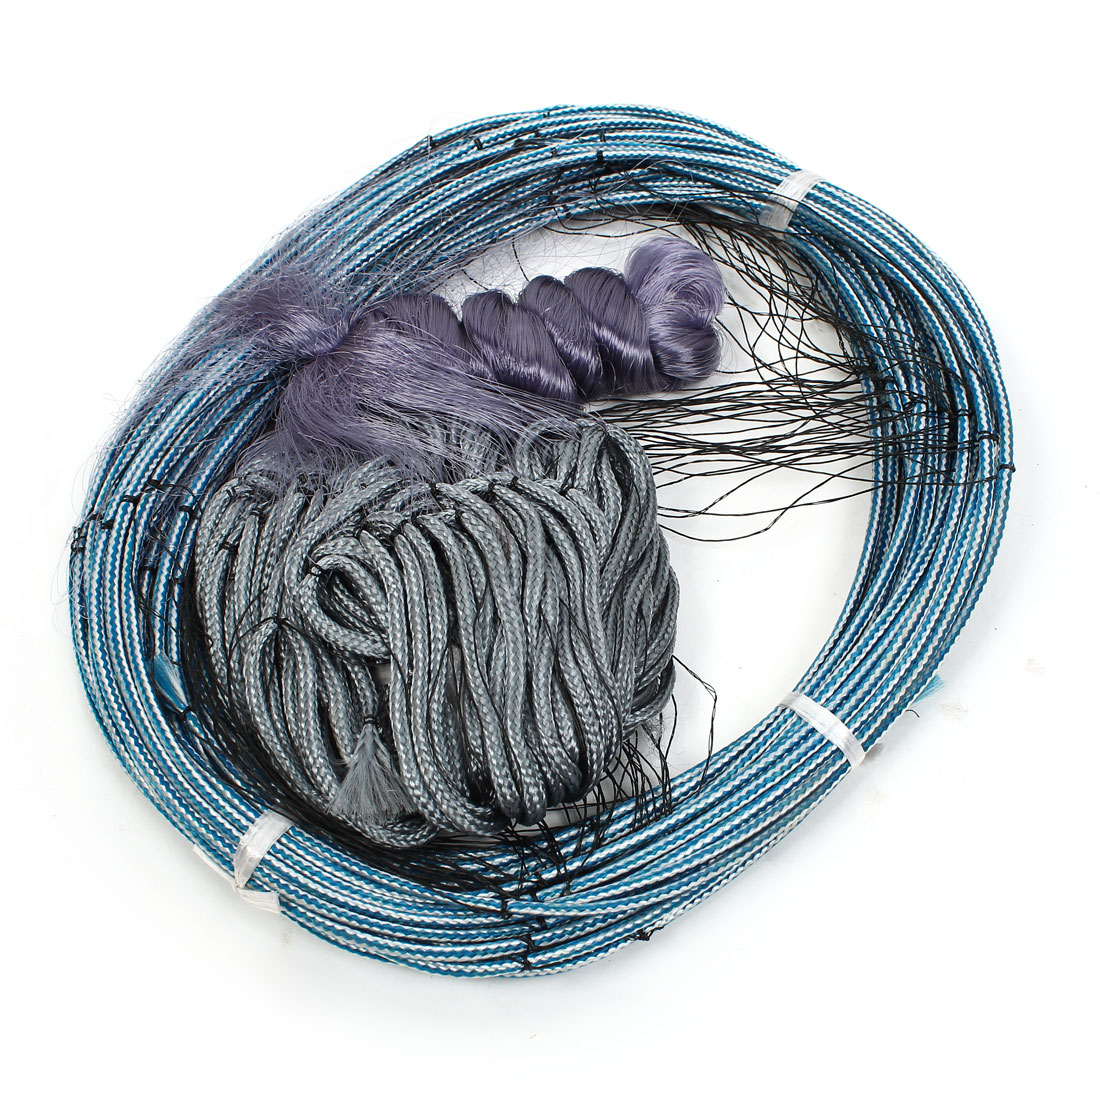 30m x 1.5m Single Layer 3.5cmx3.5cm Mesh Gray Blue Fish Gill Net